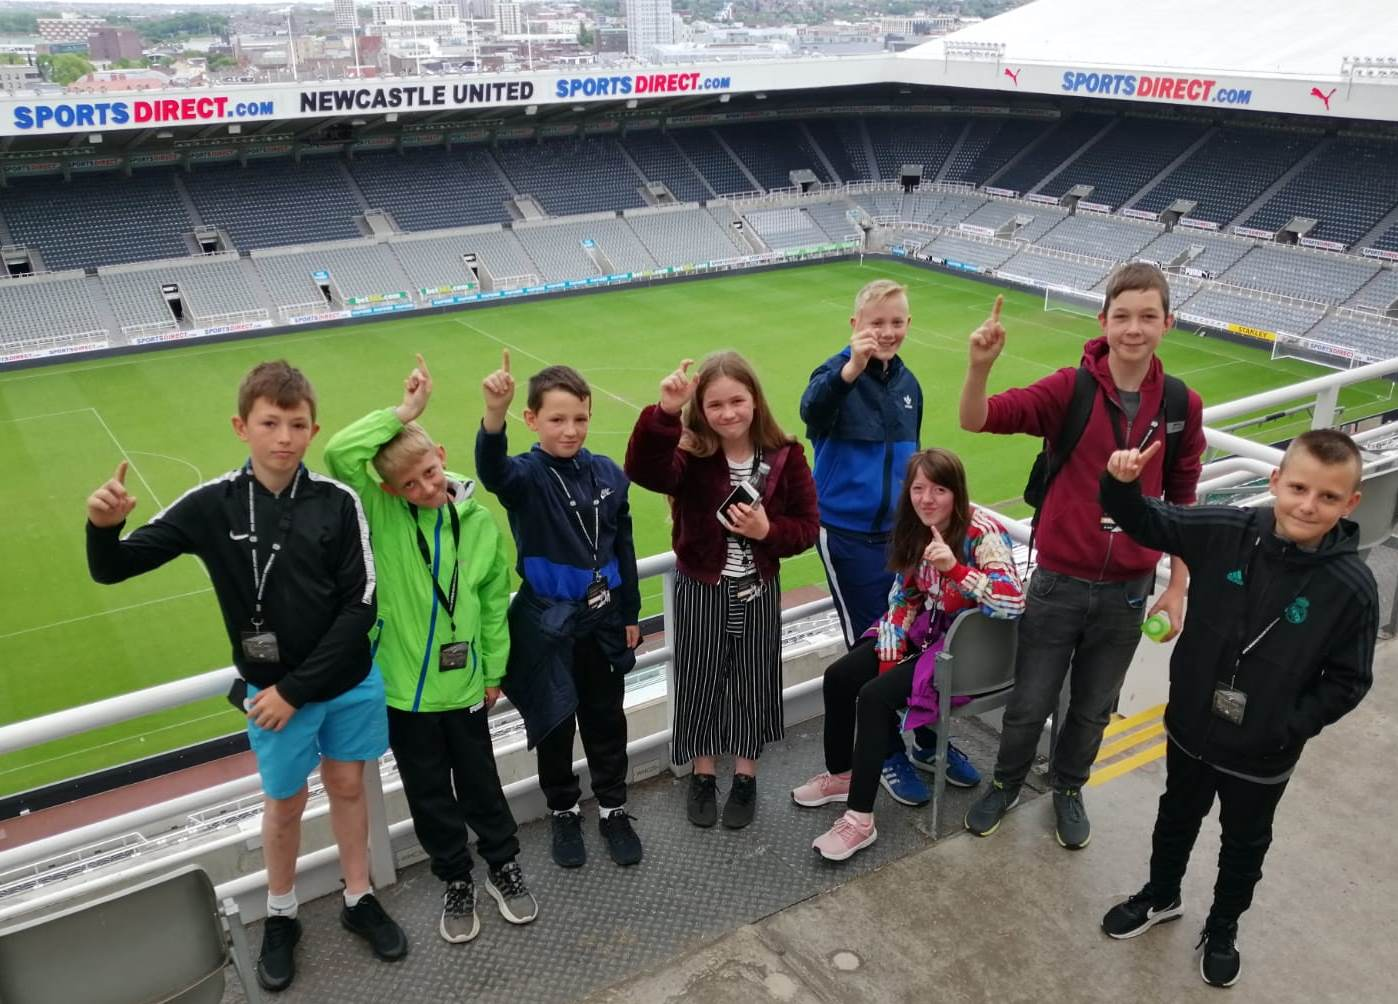 Siblings Support Group at St James' Park